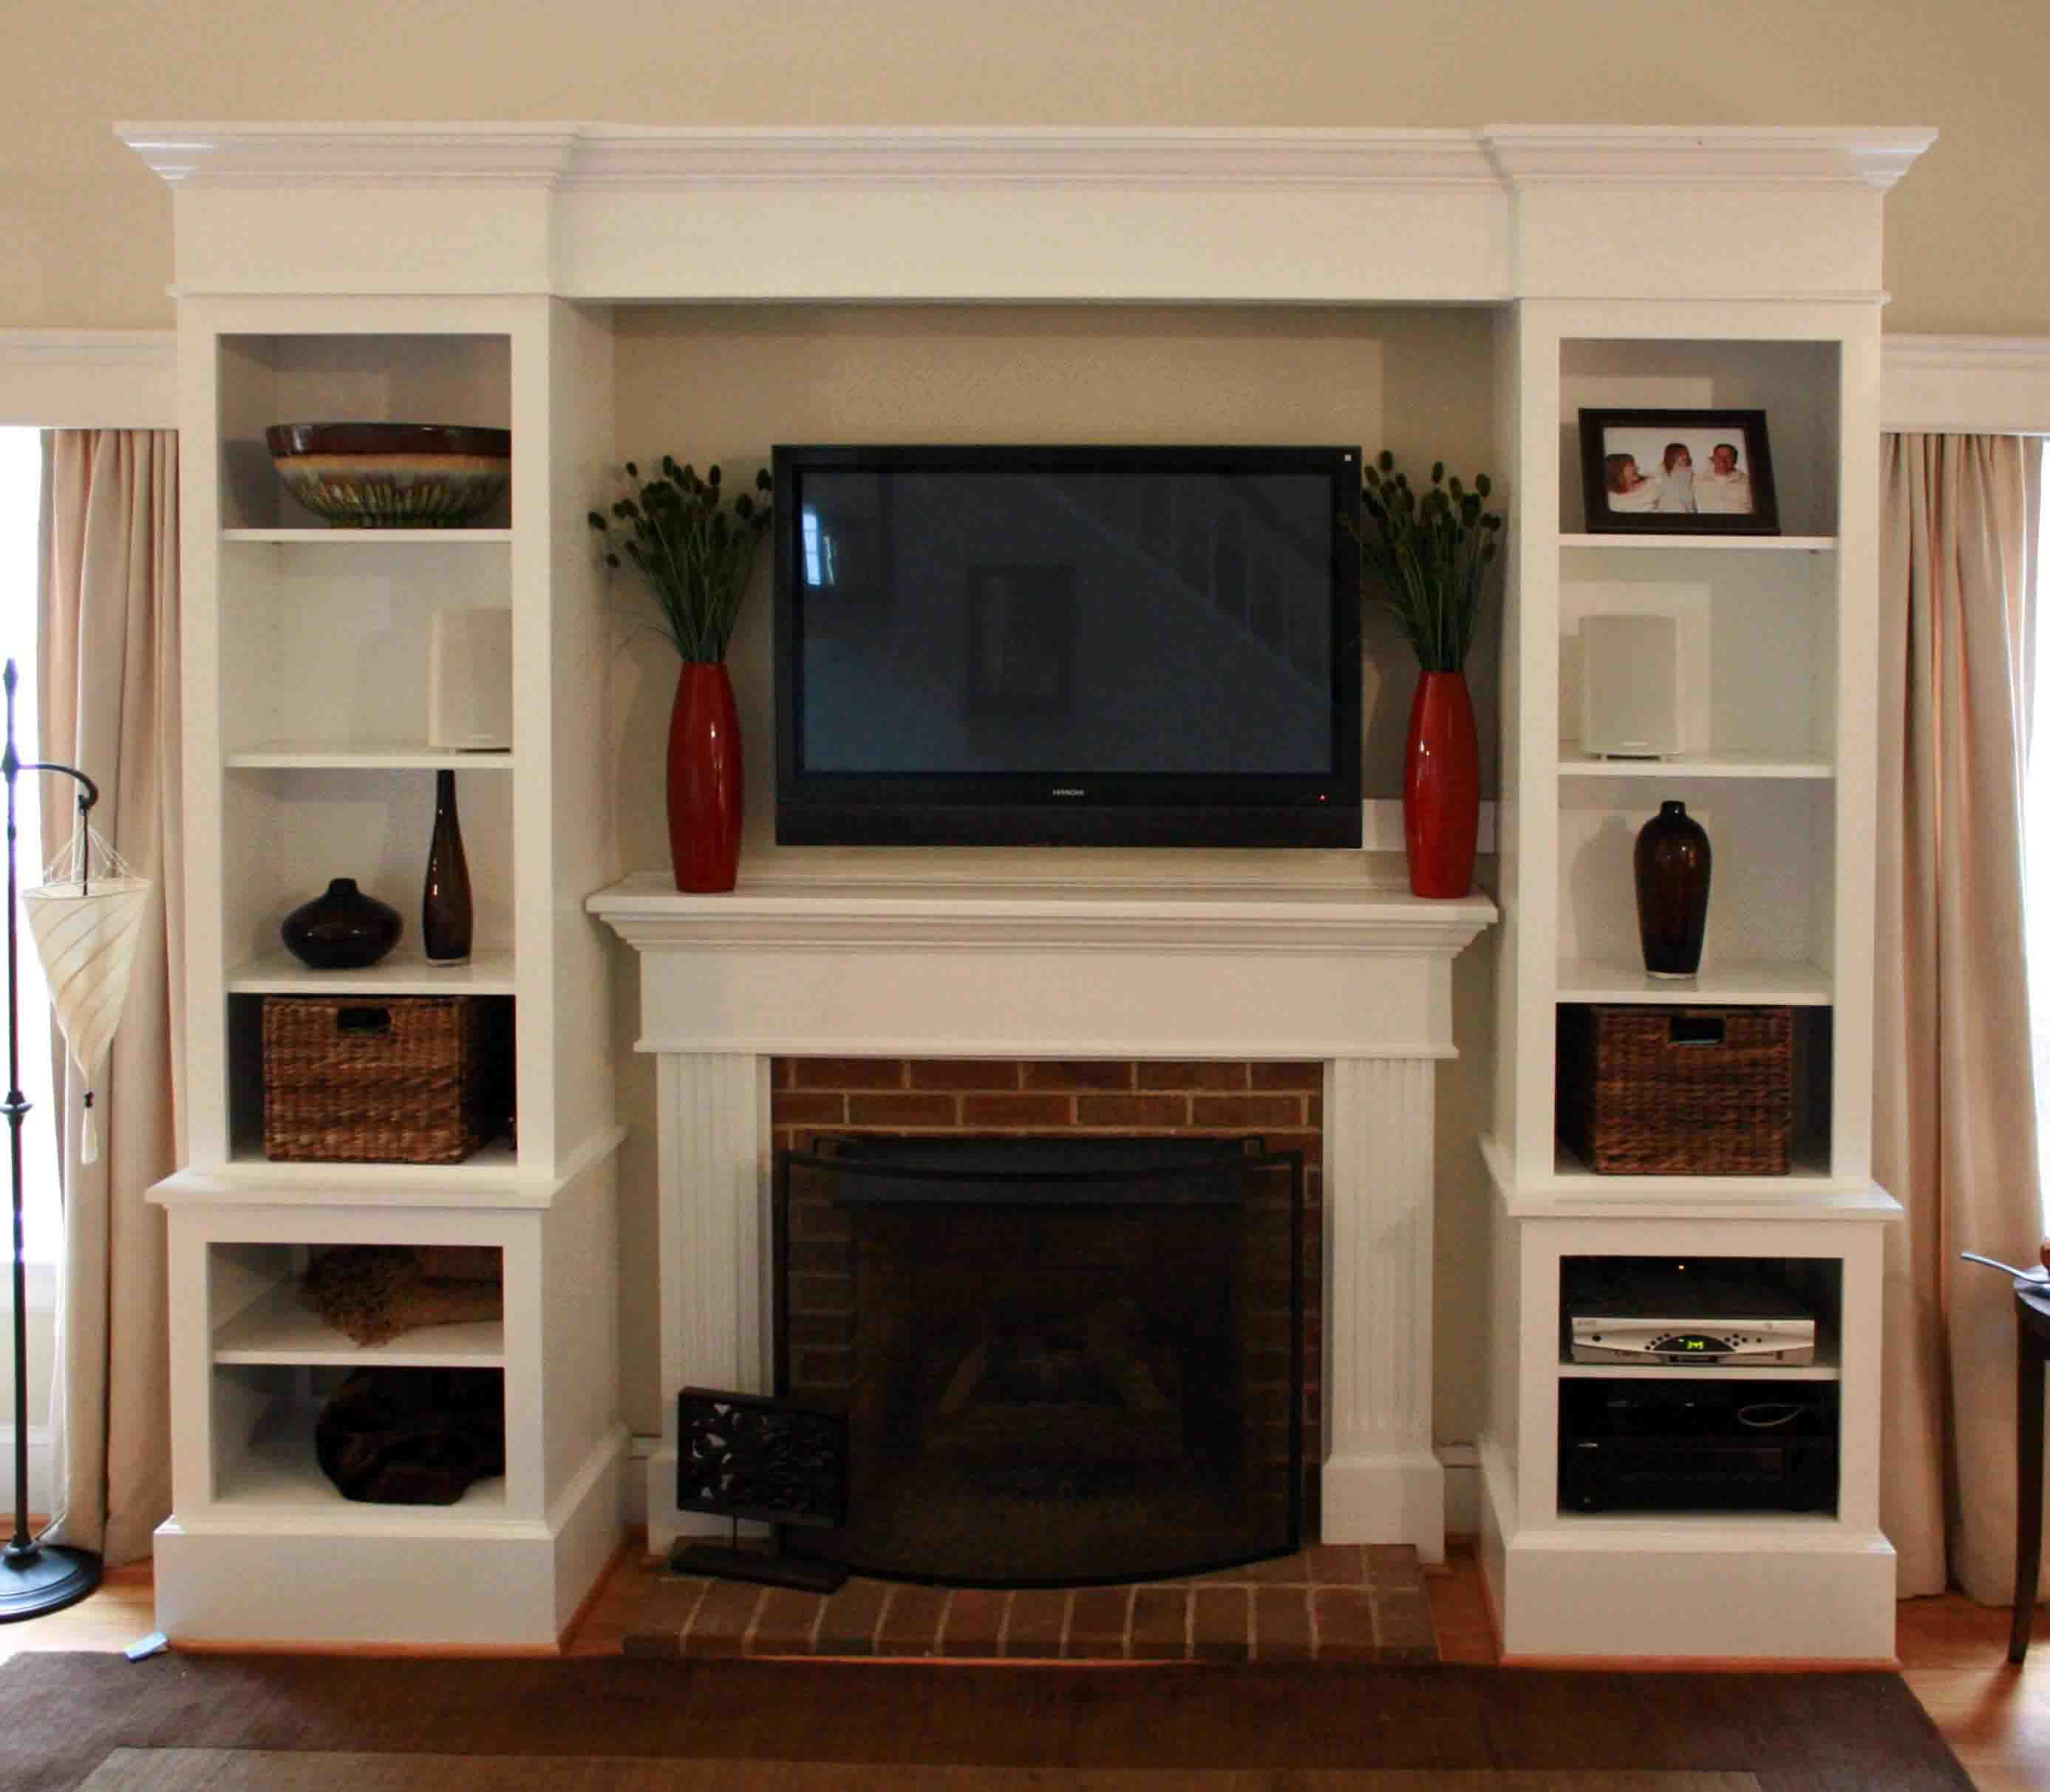 Foxy white custom built in cabinets fireplace entertainment center with open shelves storage as modern living